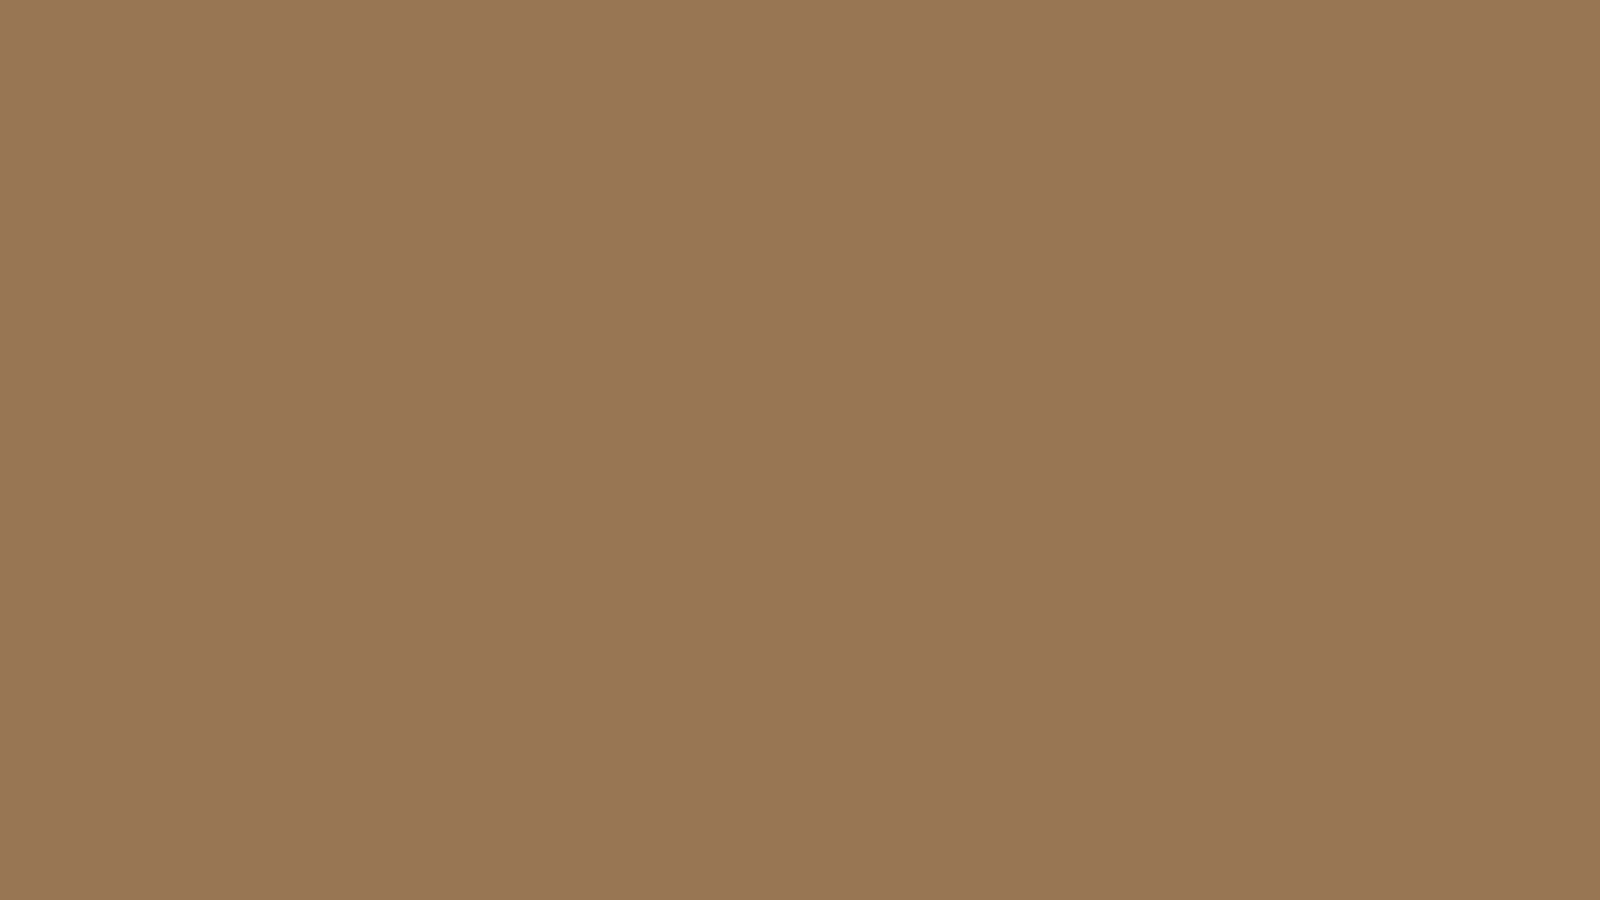 1600x900 Pale Brown Solid Color Background